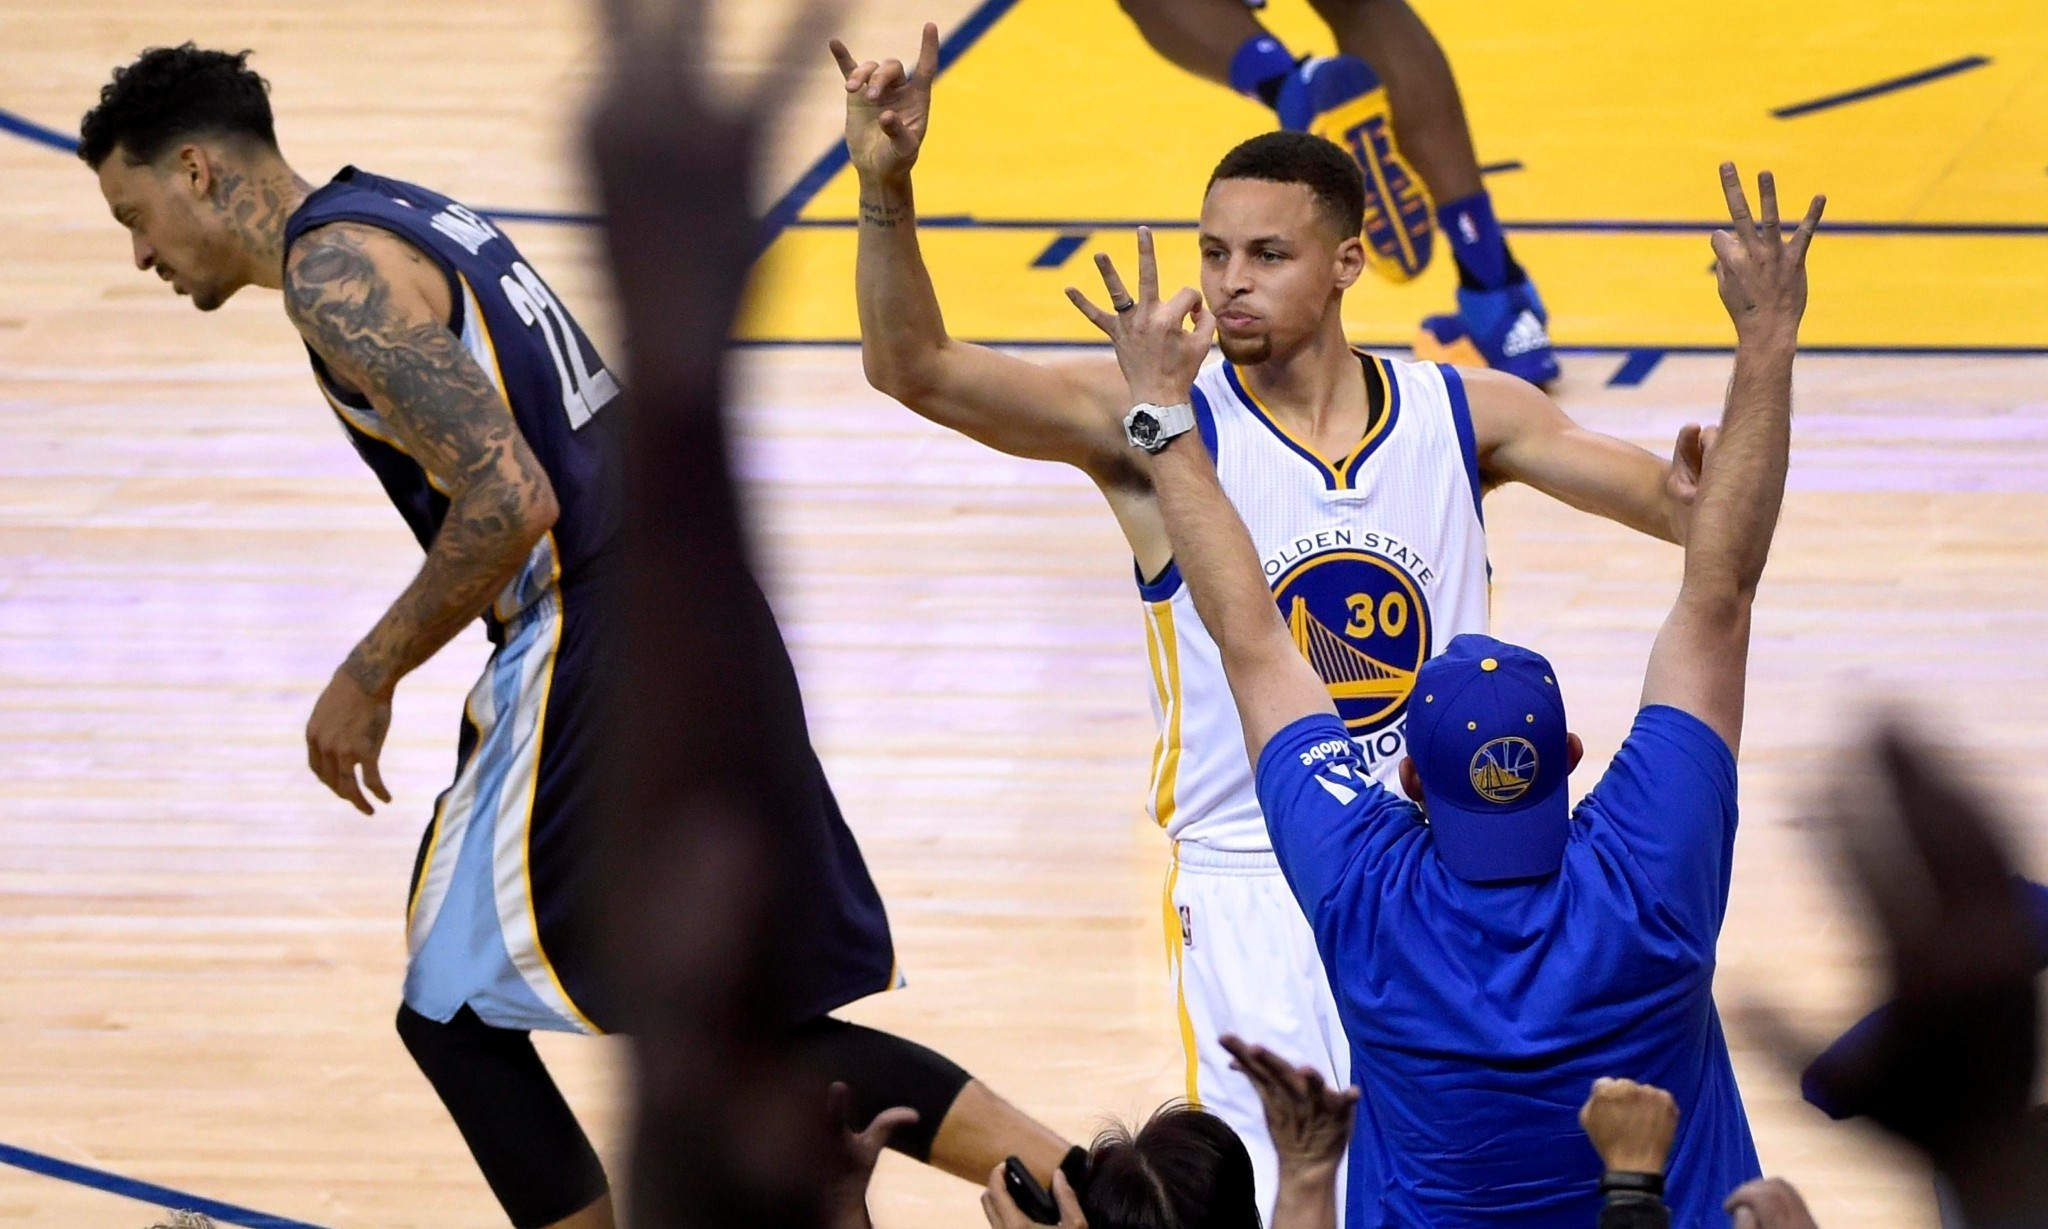 Golden State Warriors storm to 73rd win to eclipse Jordan's Bulls in record book